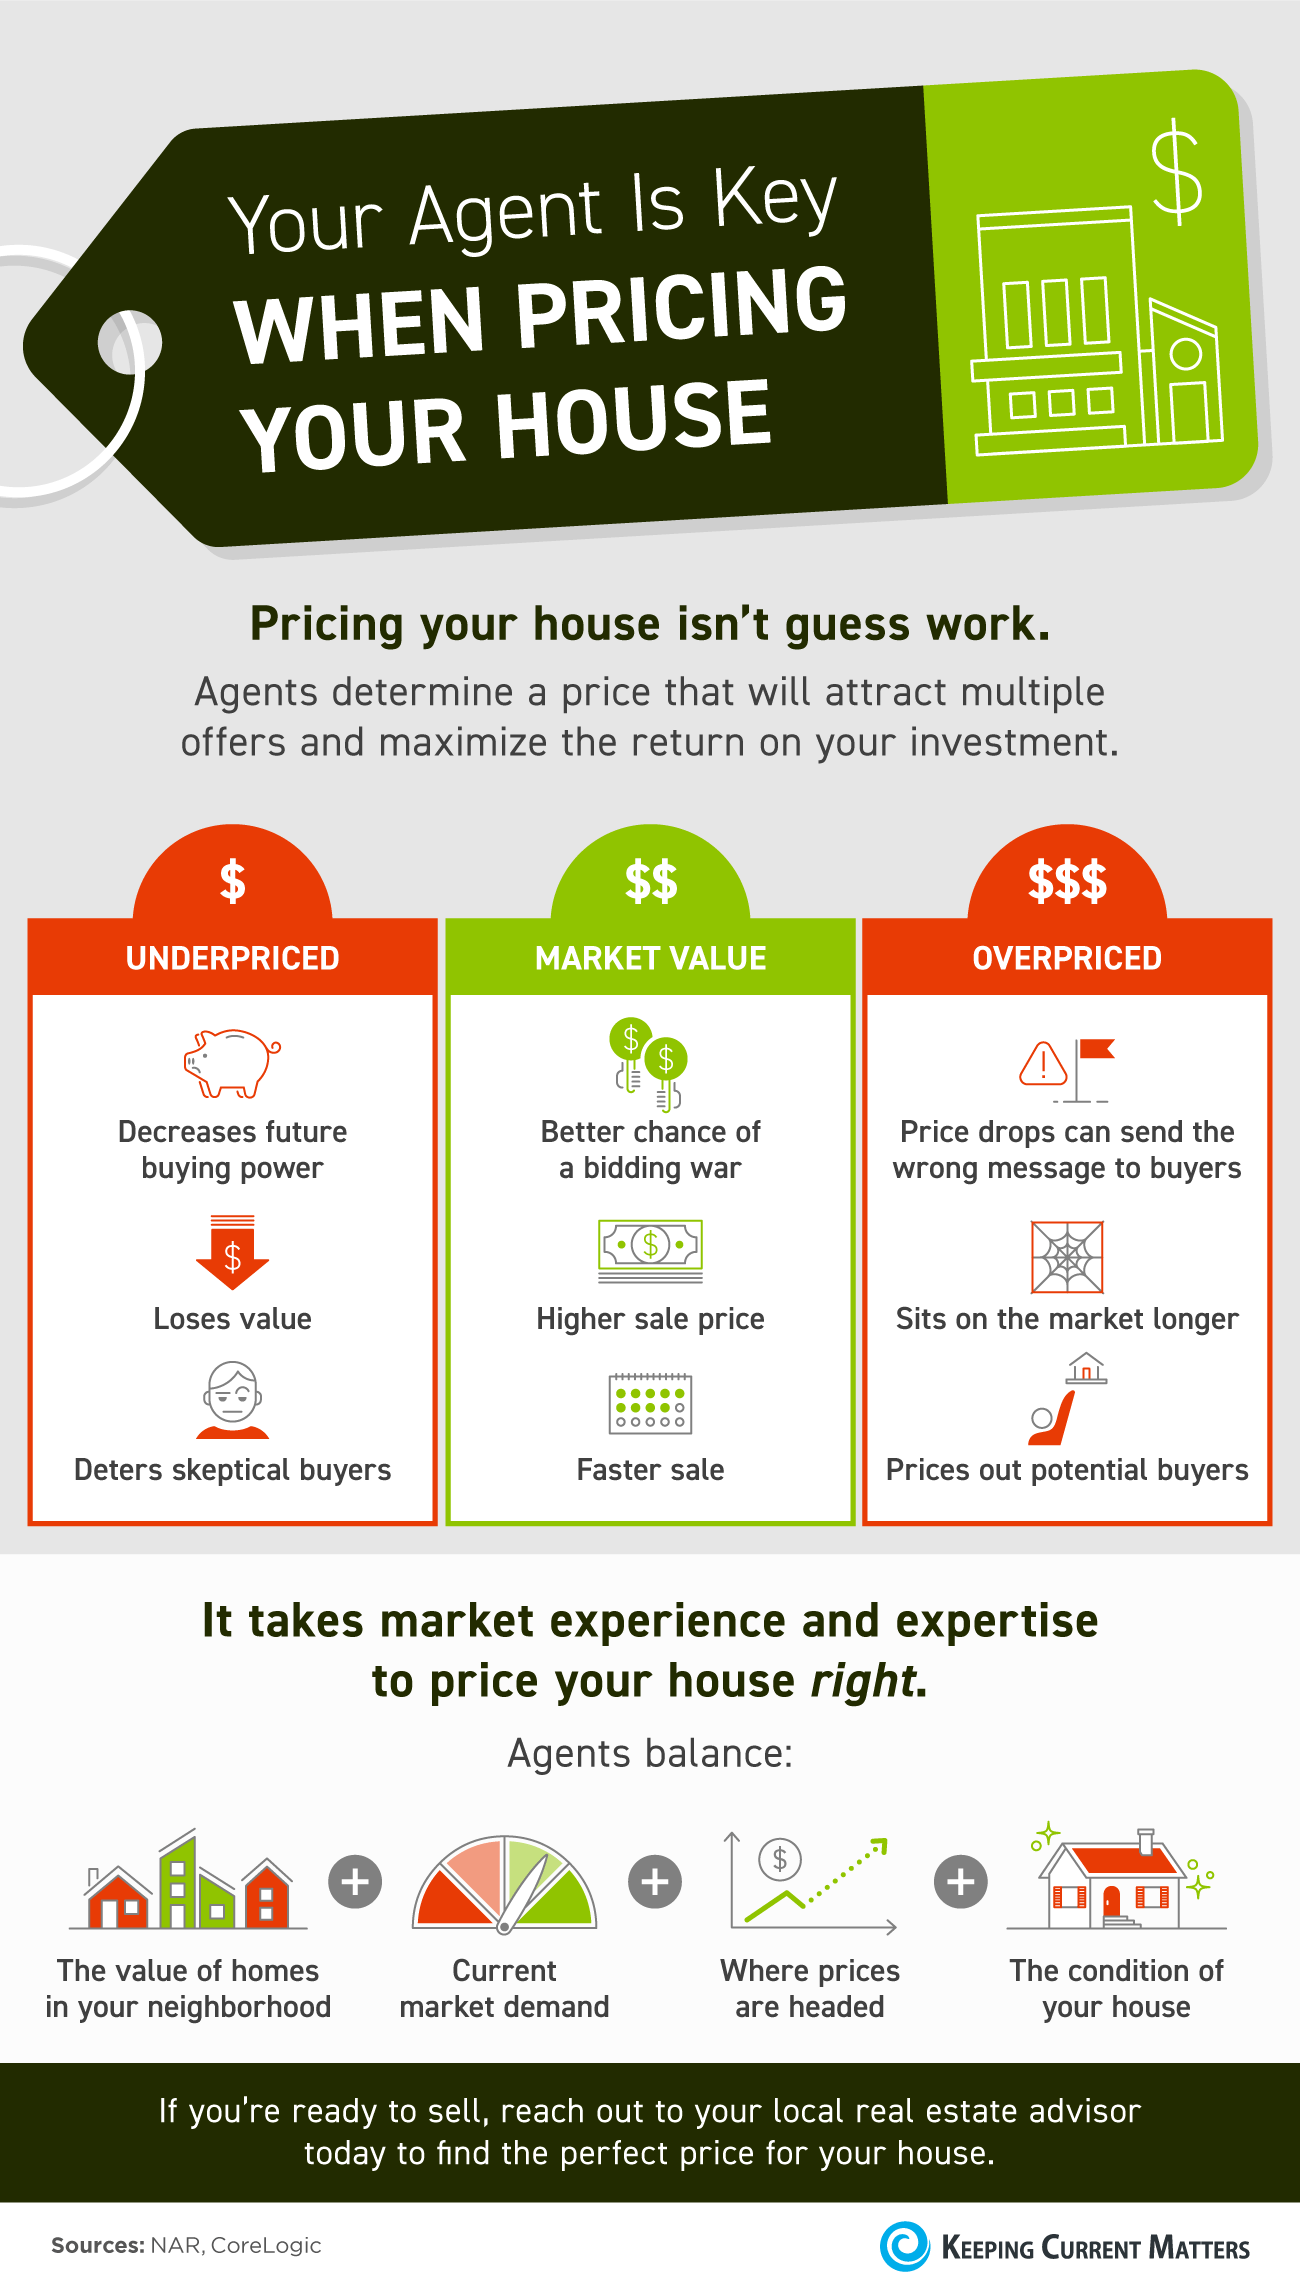 Your Agent Is Key When Pricing Your House [INFOGRAPHIC] | Keeping Current Matters